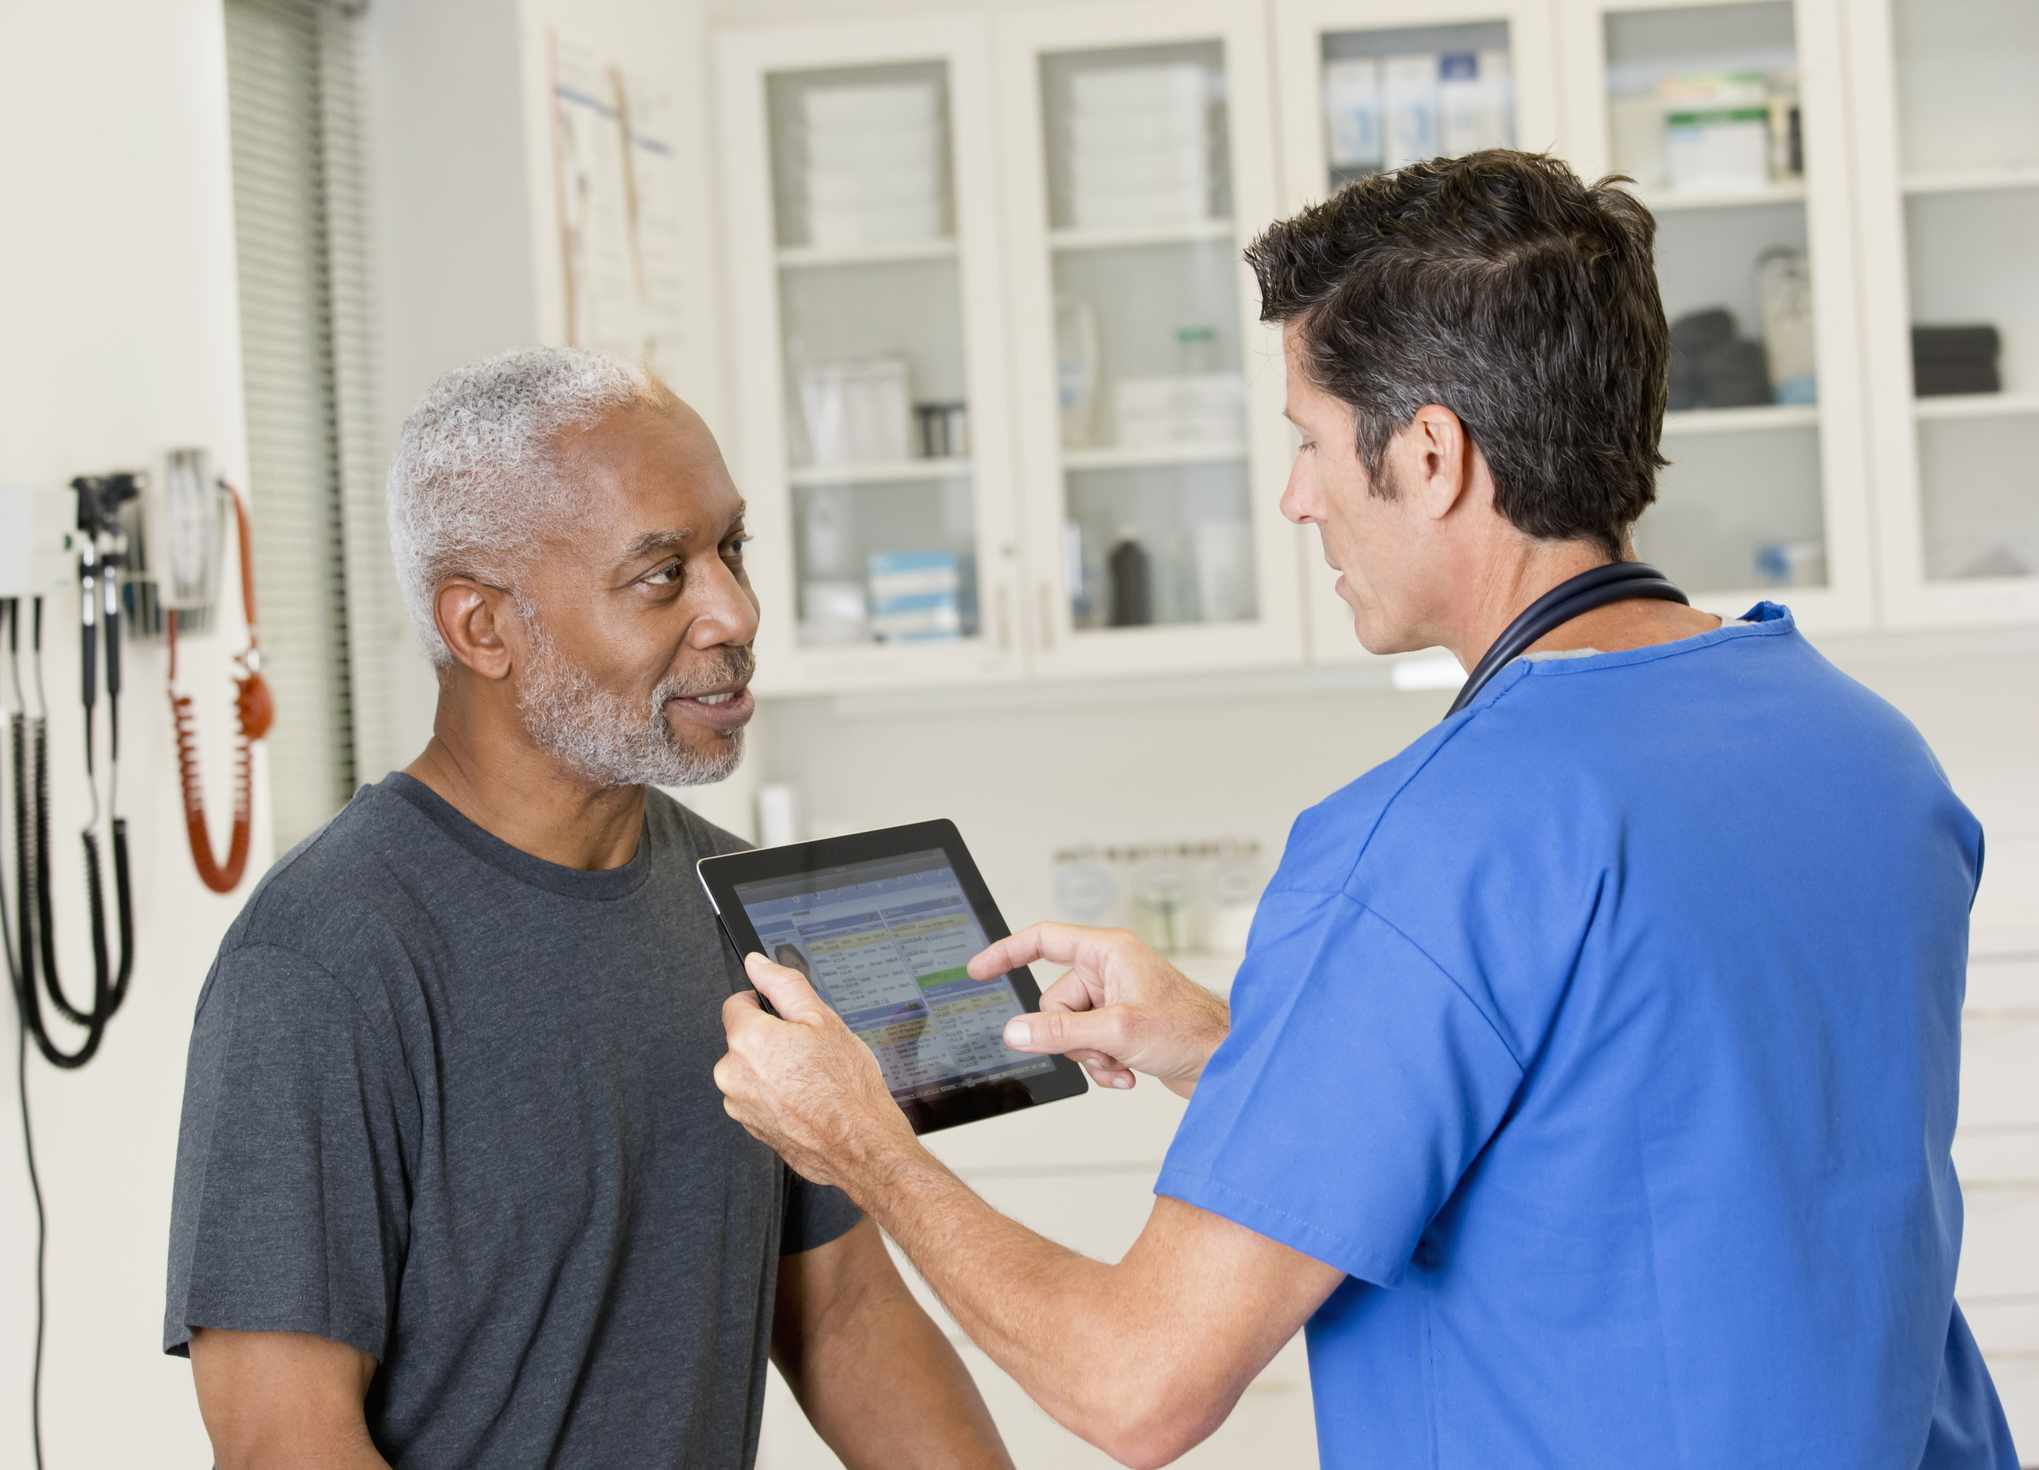 Doctor on iPad talking with patient in his office